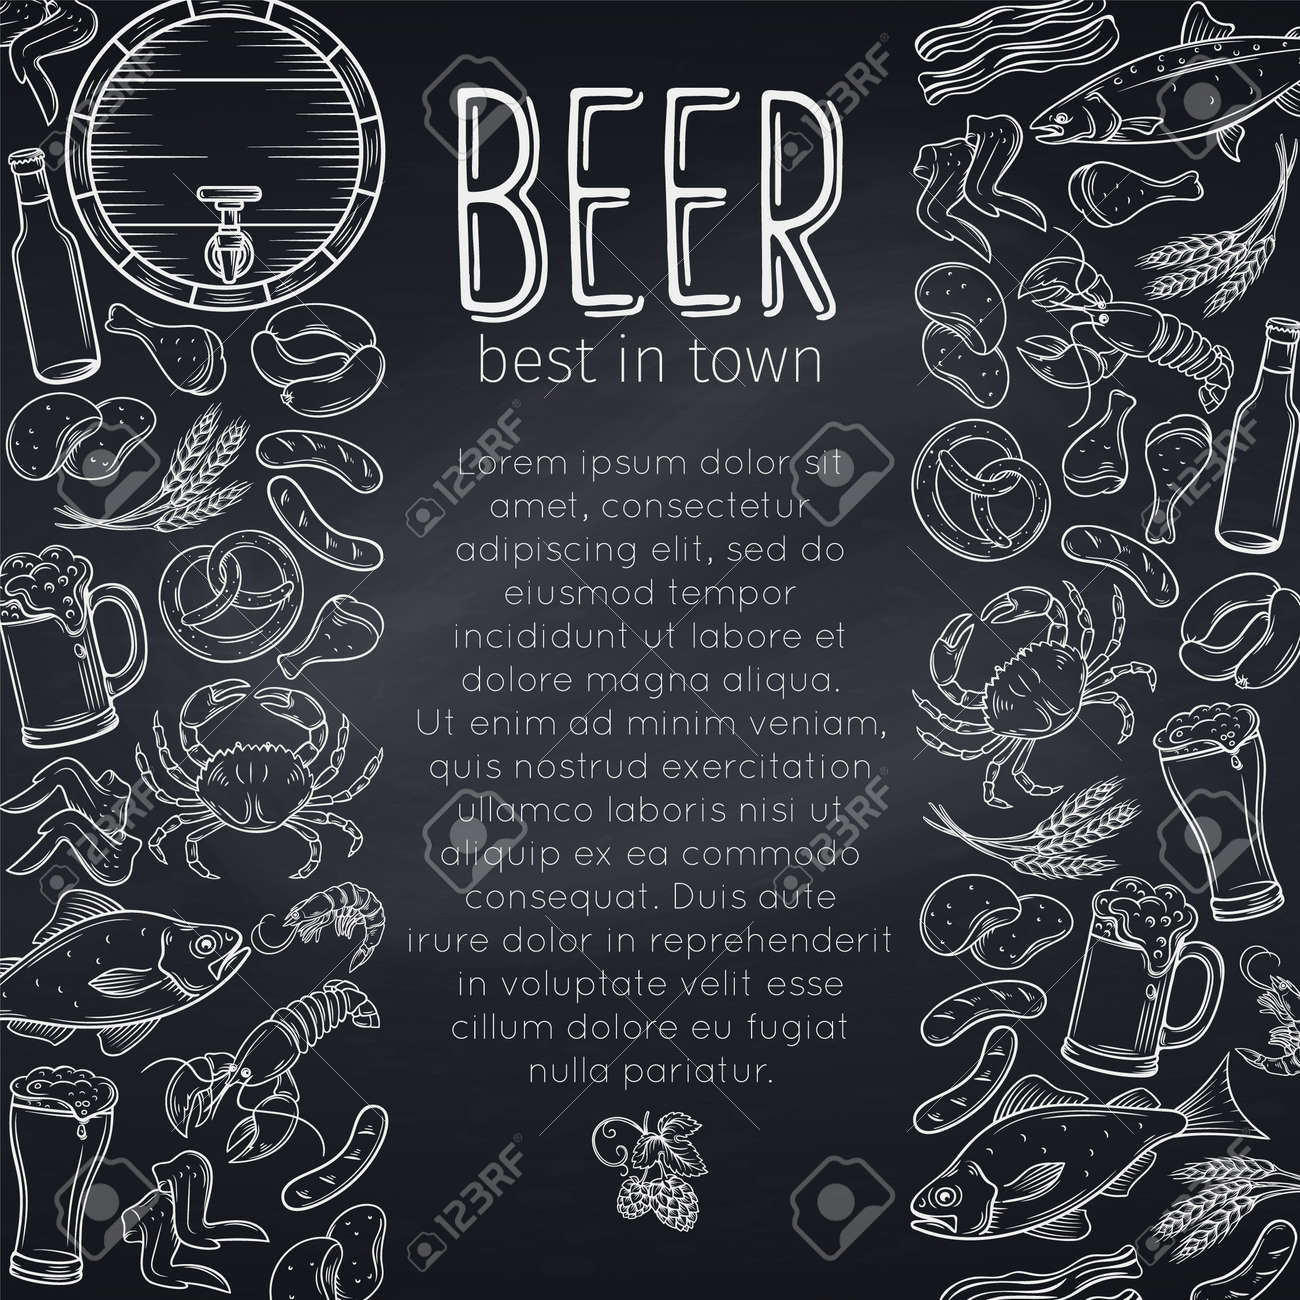 Pub Food And Beer Poster Design Vector Alcohol And Snacks Poster